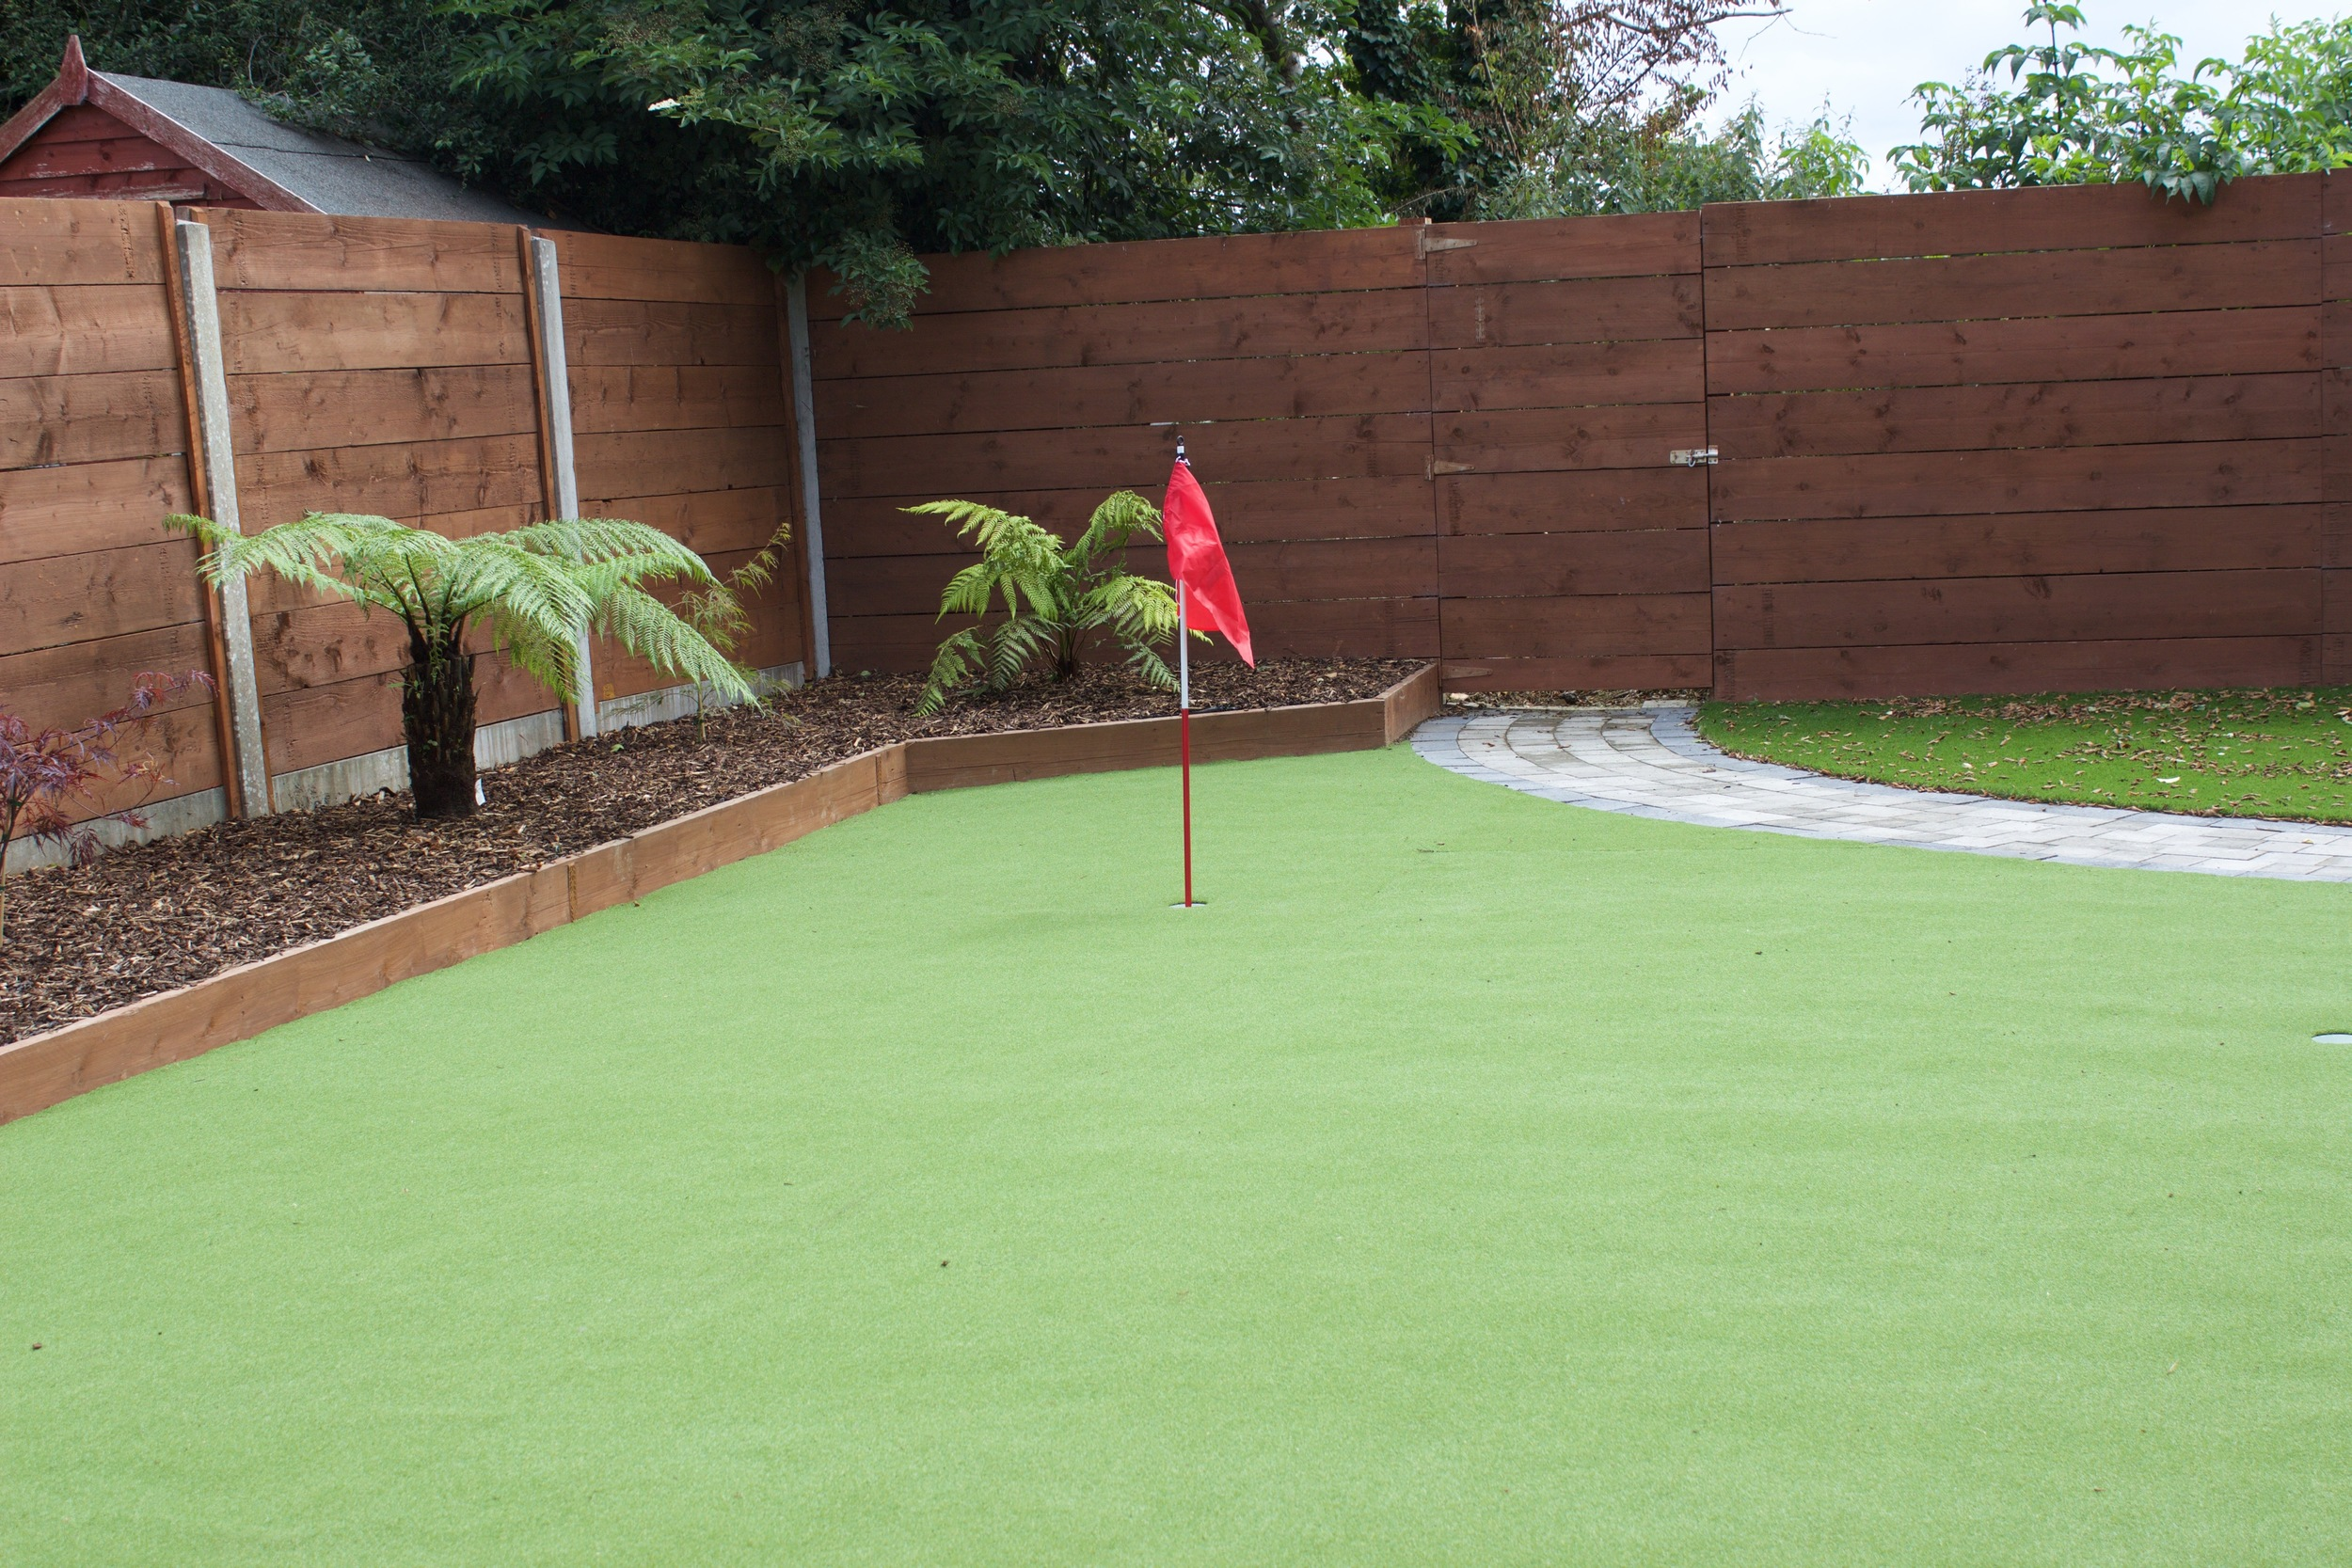 garden landscaping with golf putting green.jpg